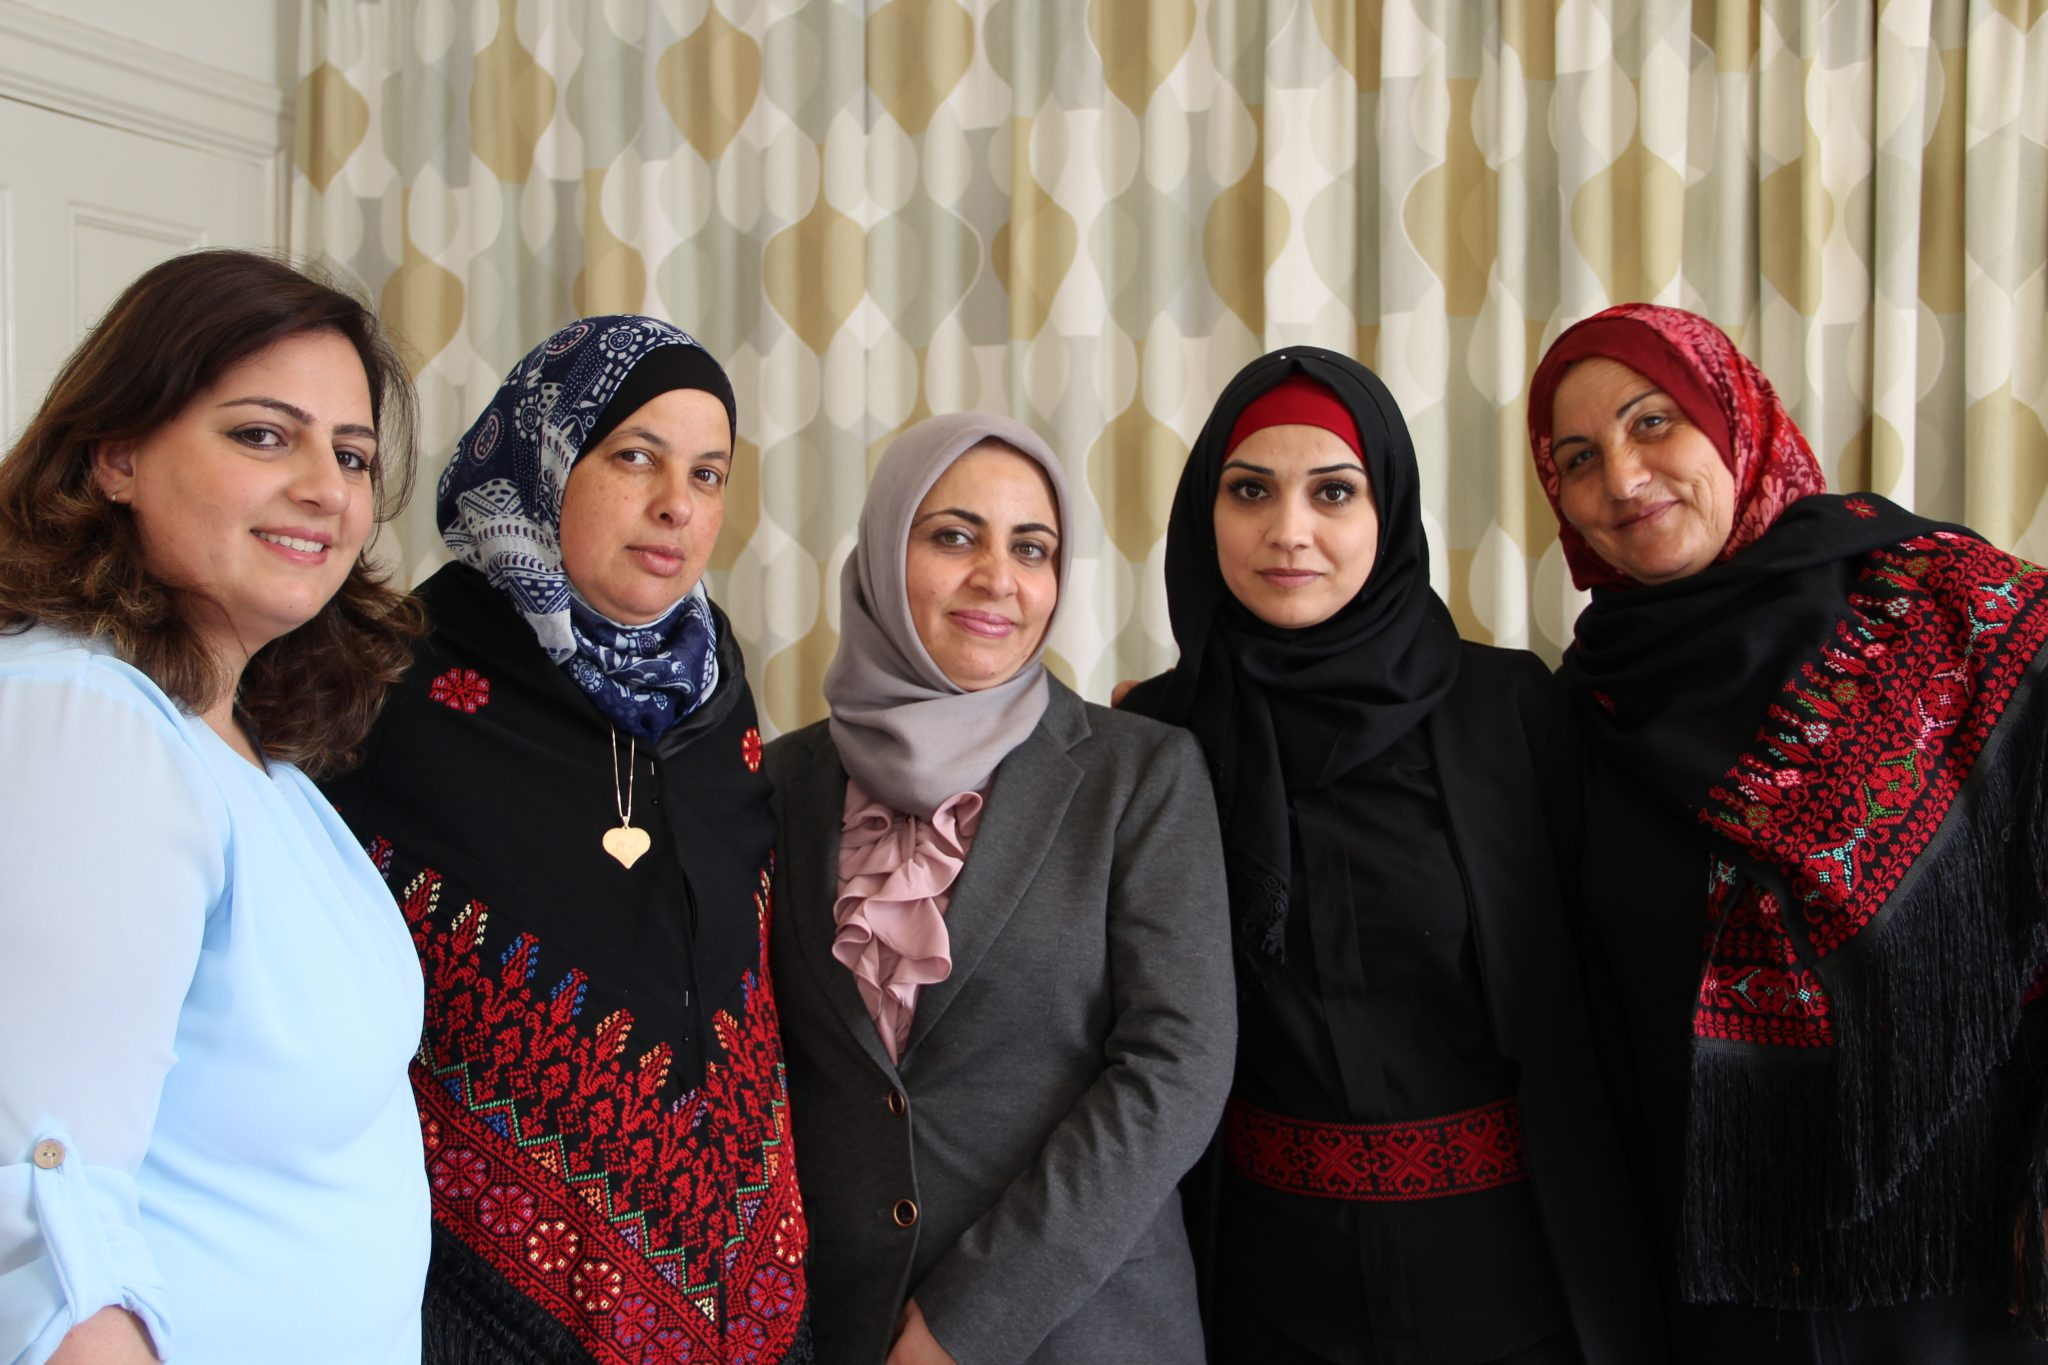 """Participants of the """"Bereaved to Bereaved"""" programme, run by our Palestinian partner organisations Women's Studies Centre and Women's Affairs Centre. Photo: Anna-Carin Hall / Kvinna till Kvinna"""